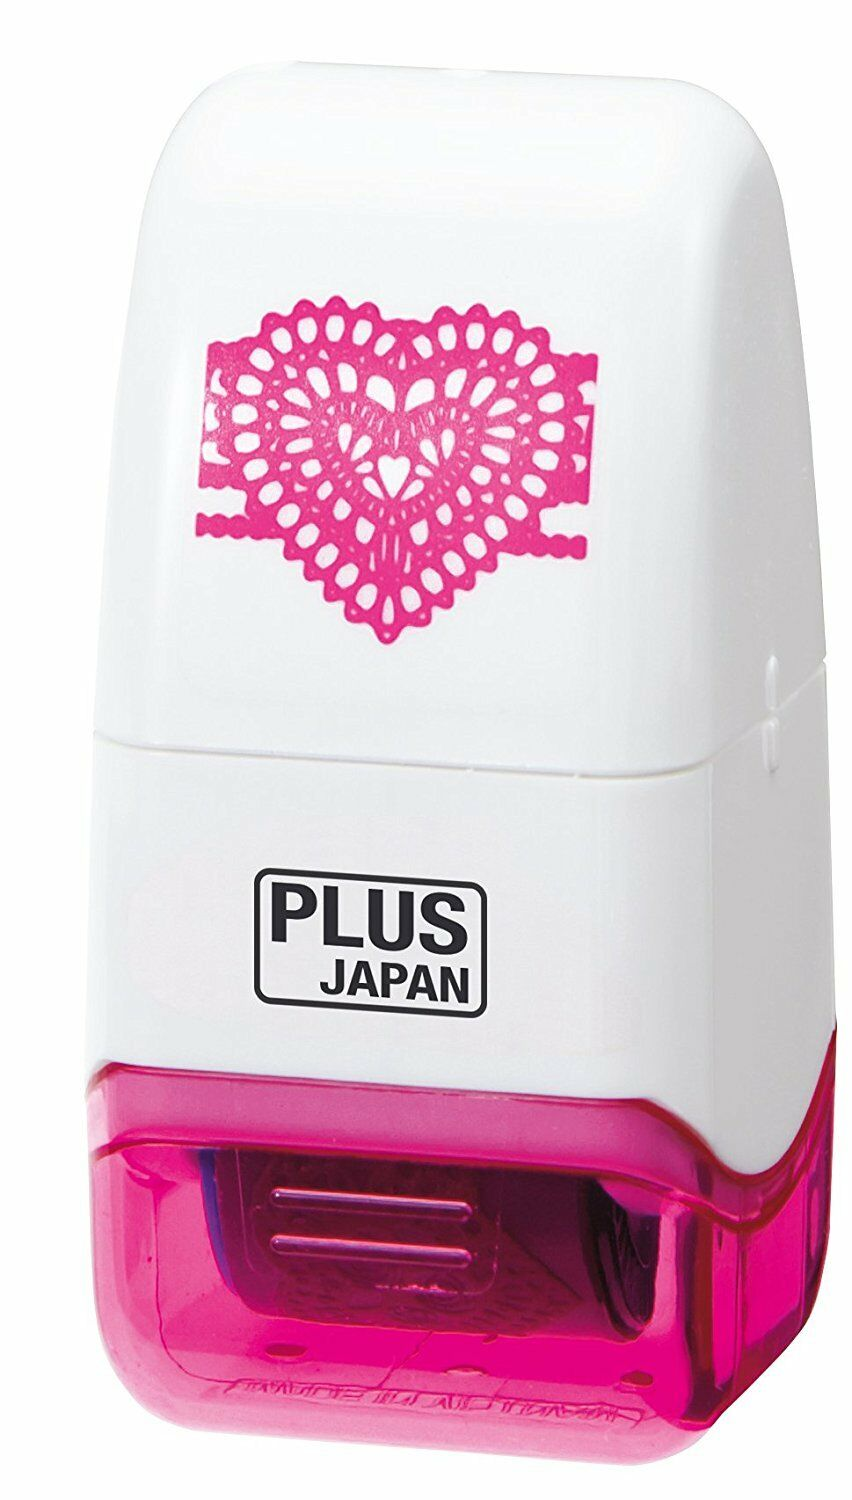 Plus Japan Decoration Roller - Hearts - Derbyshire Gift Centre